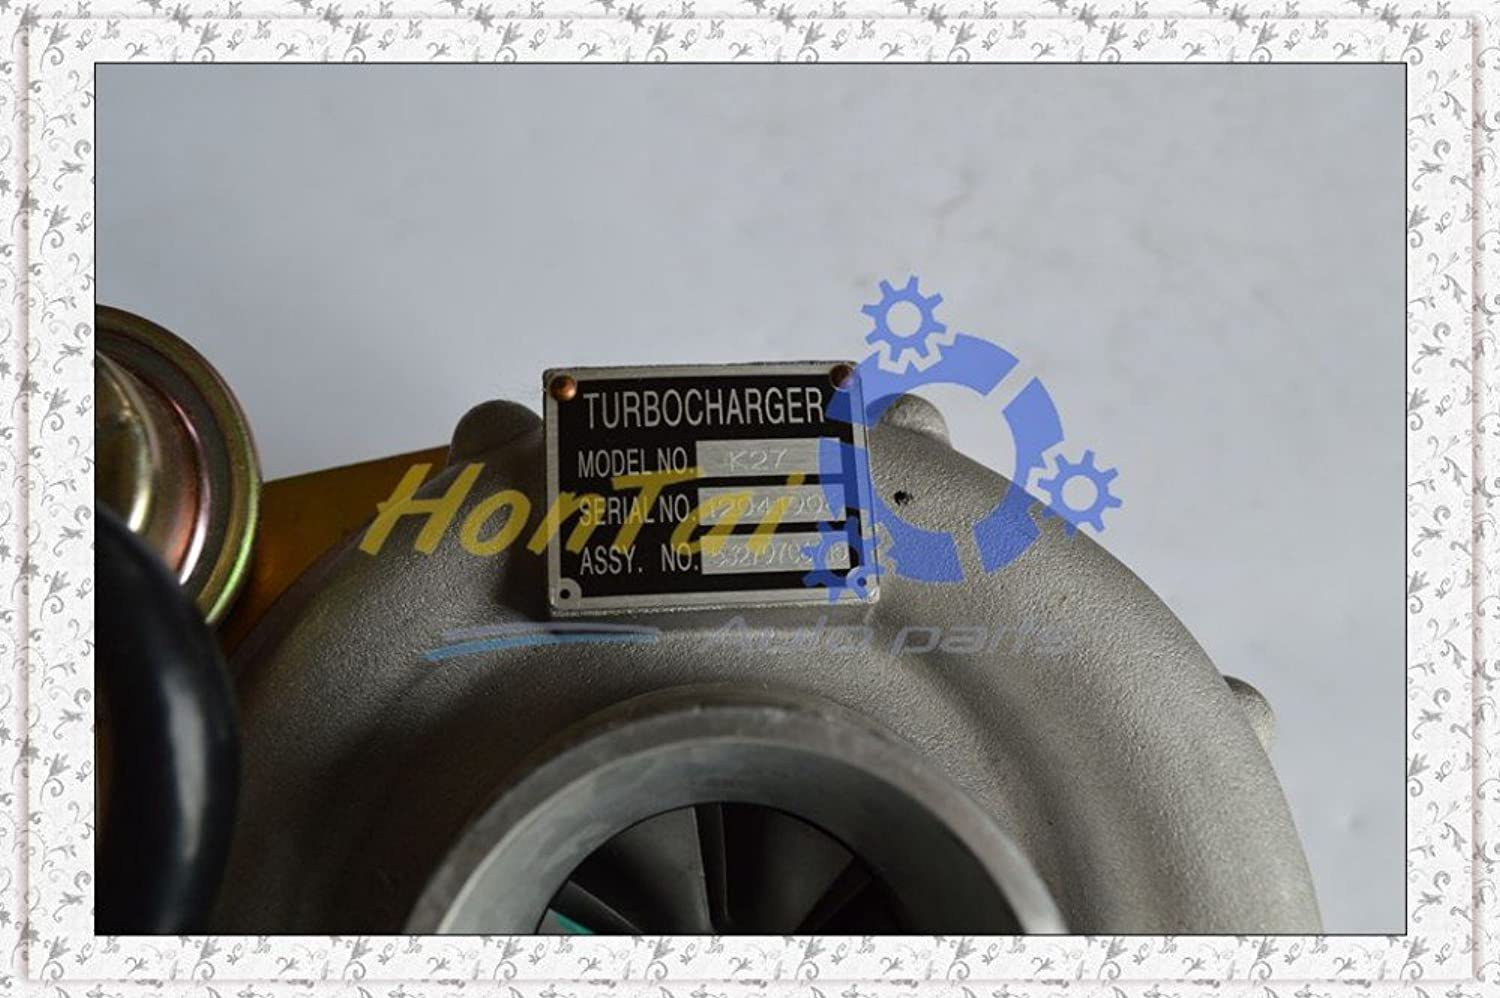 New K27 53279706715 Turbocharger For 9408 IvecoFiat Truck Euro cargo 8060.45.4400 Euro 2 5.9L 150 204KW